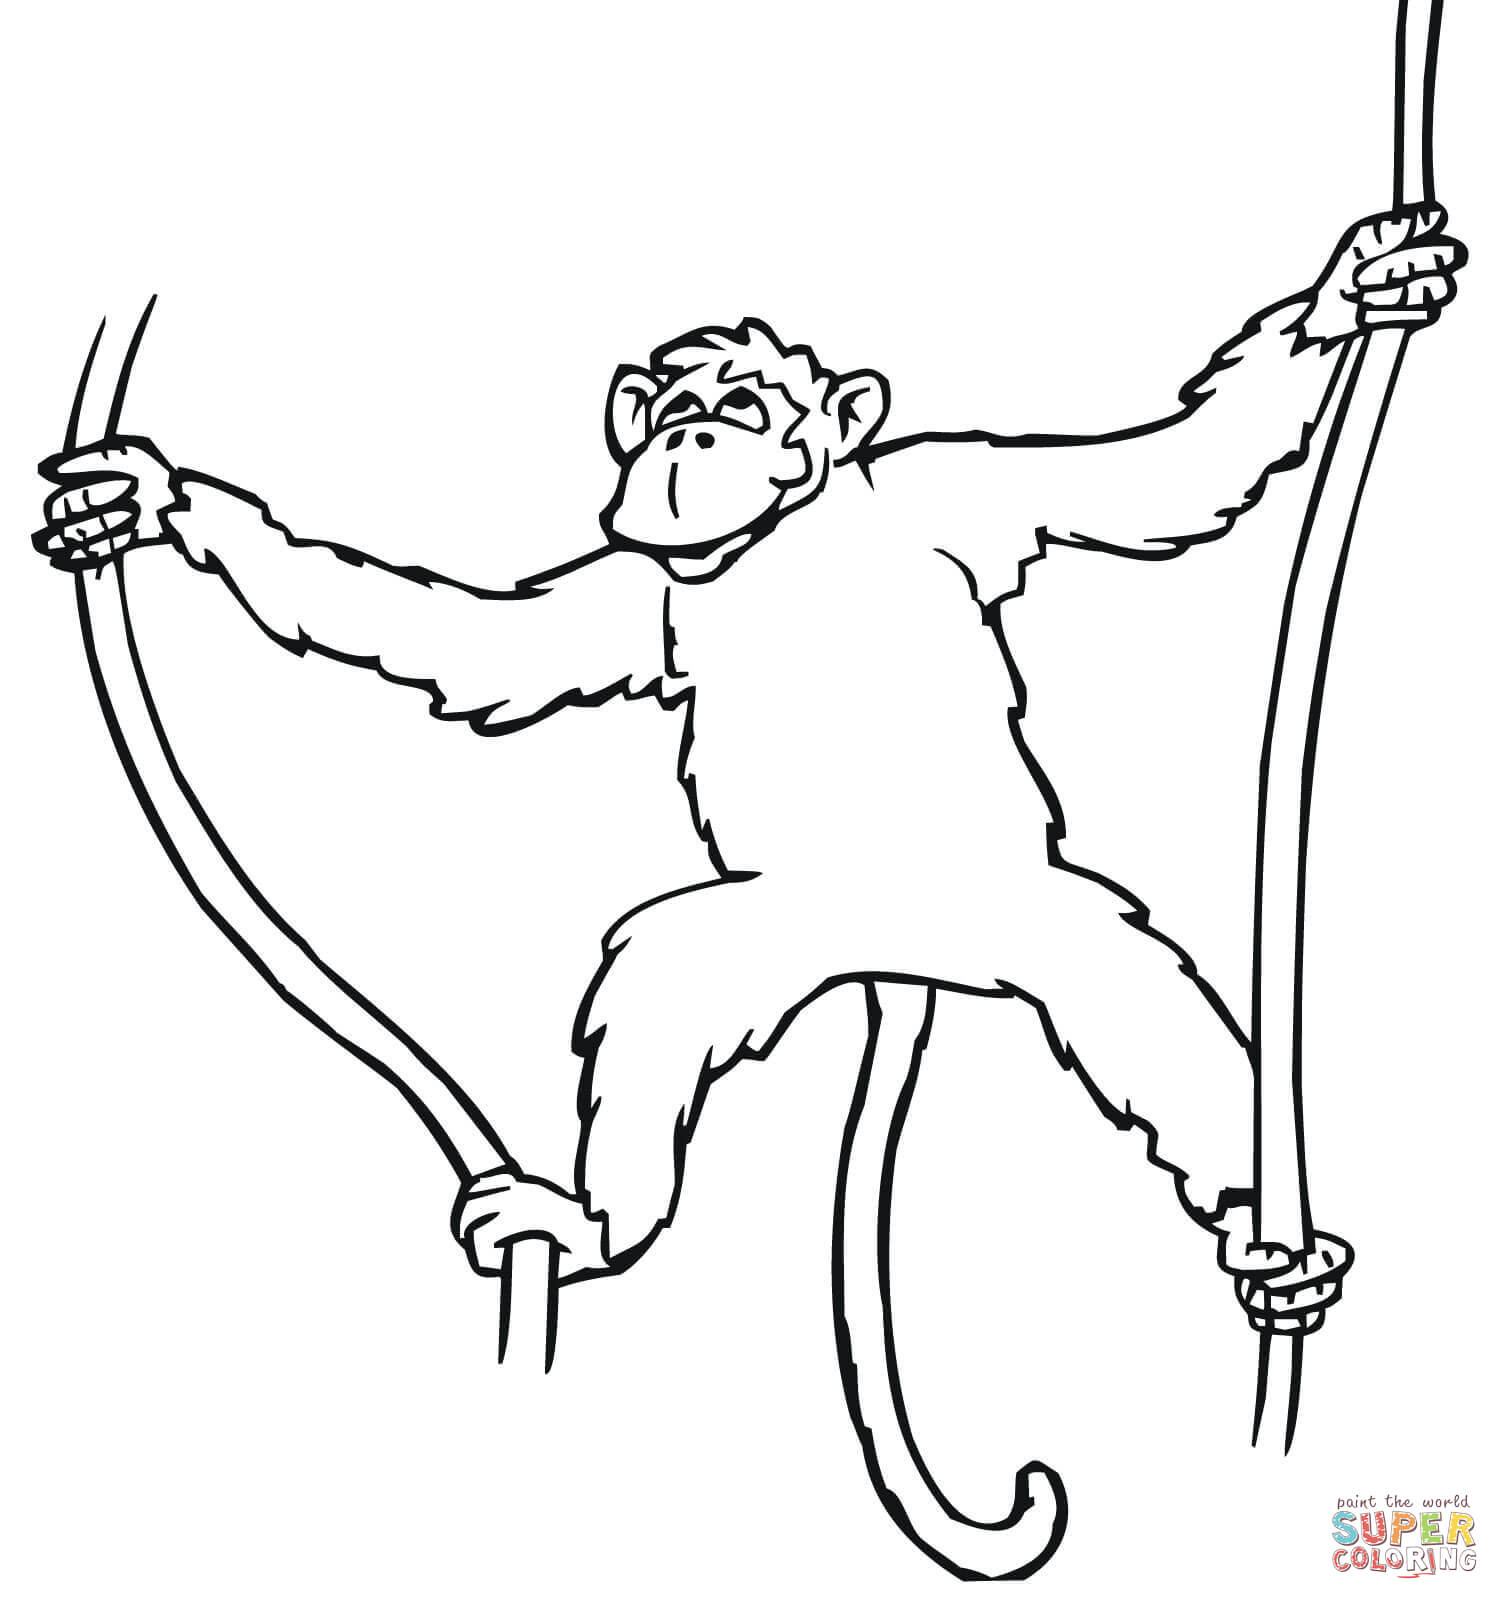 1500x1600 How To Draw A Monkey Hanging From A Tree